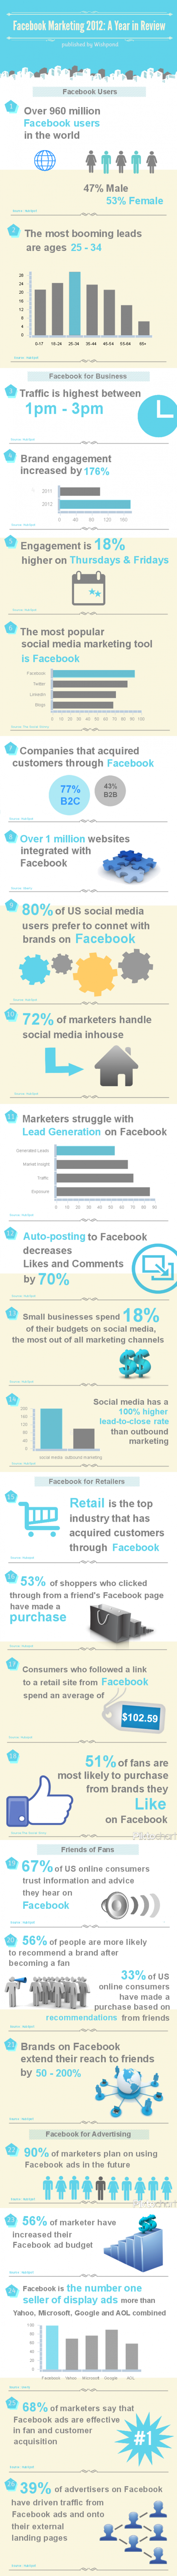 Facebook Marketing 2012: A Year in Review